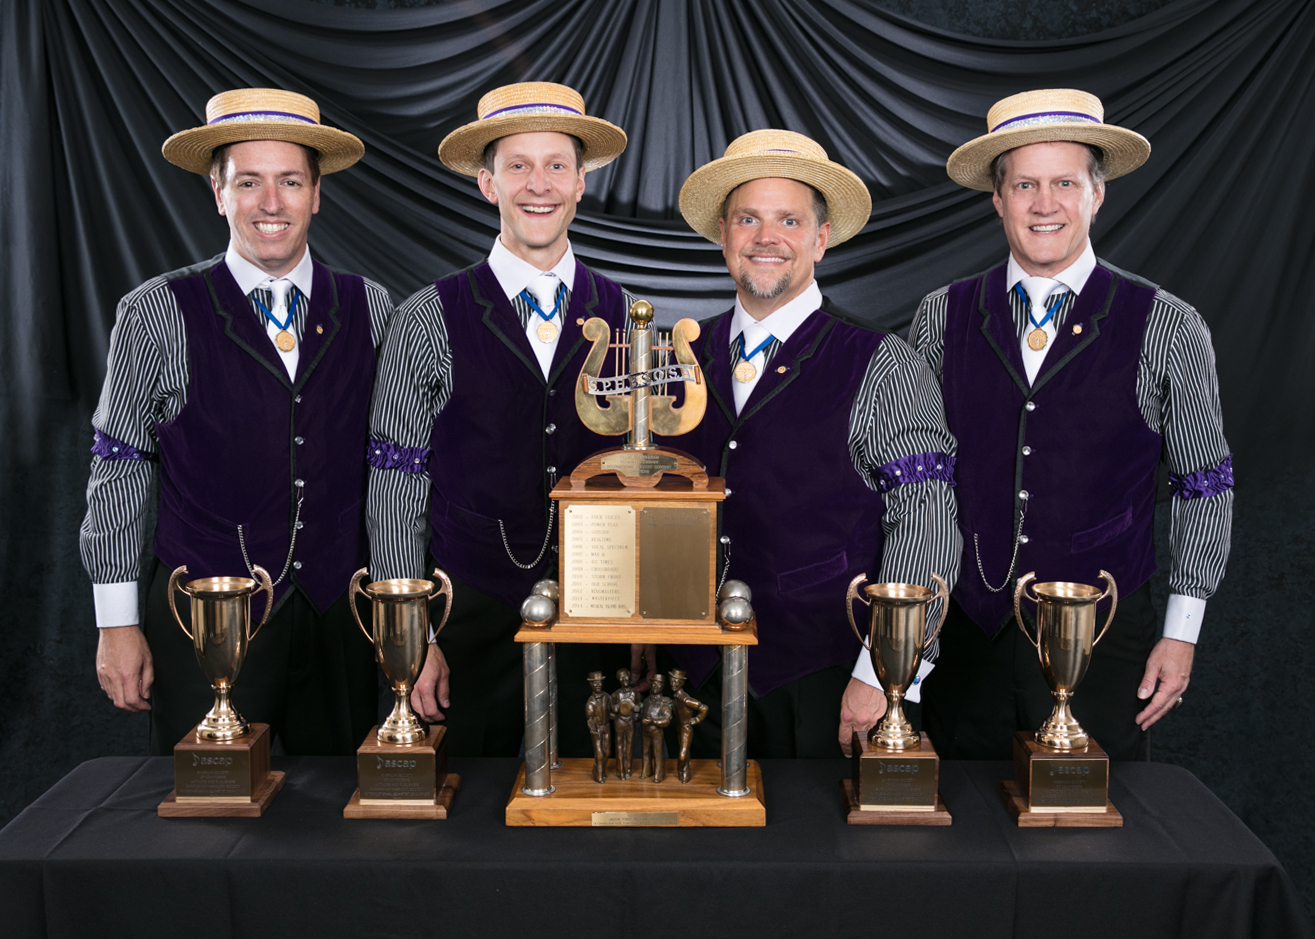 QUARTET - Main Street Trophy